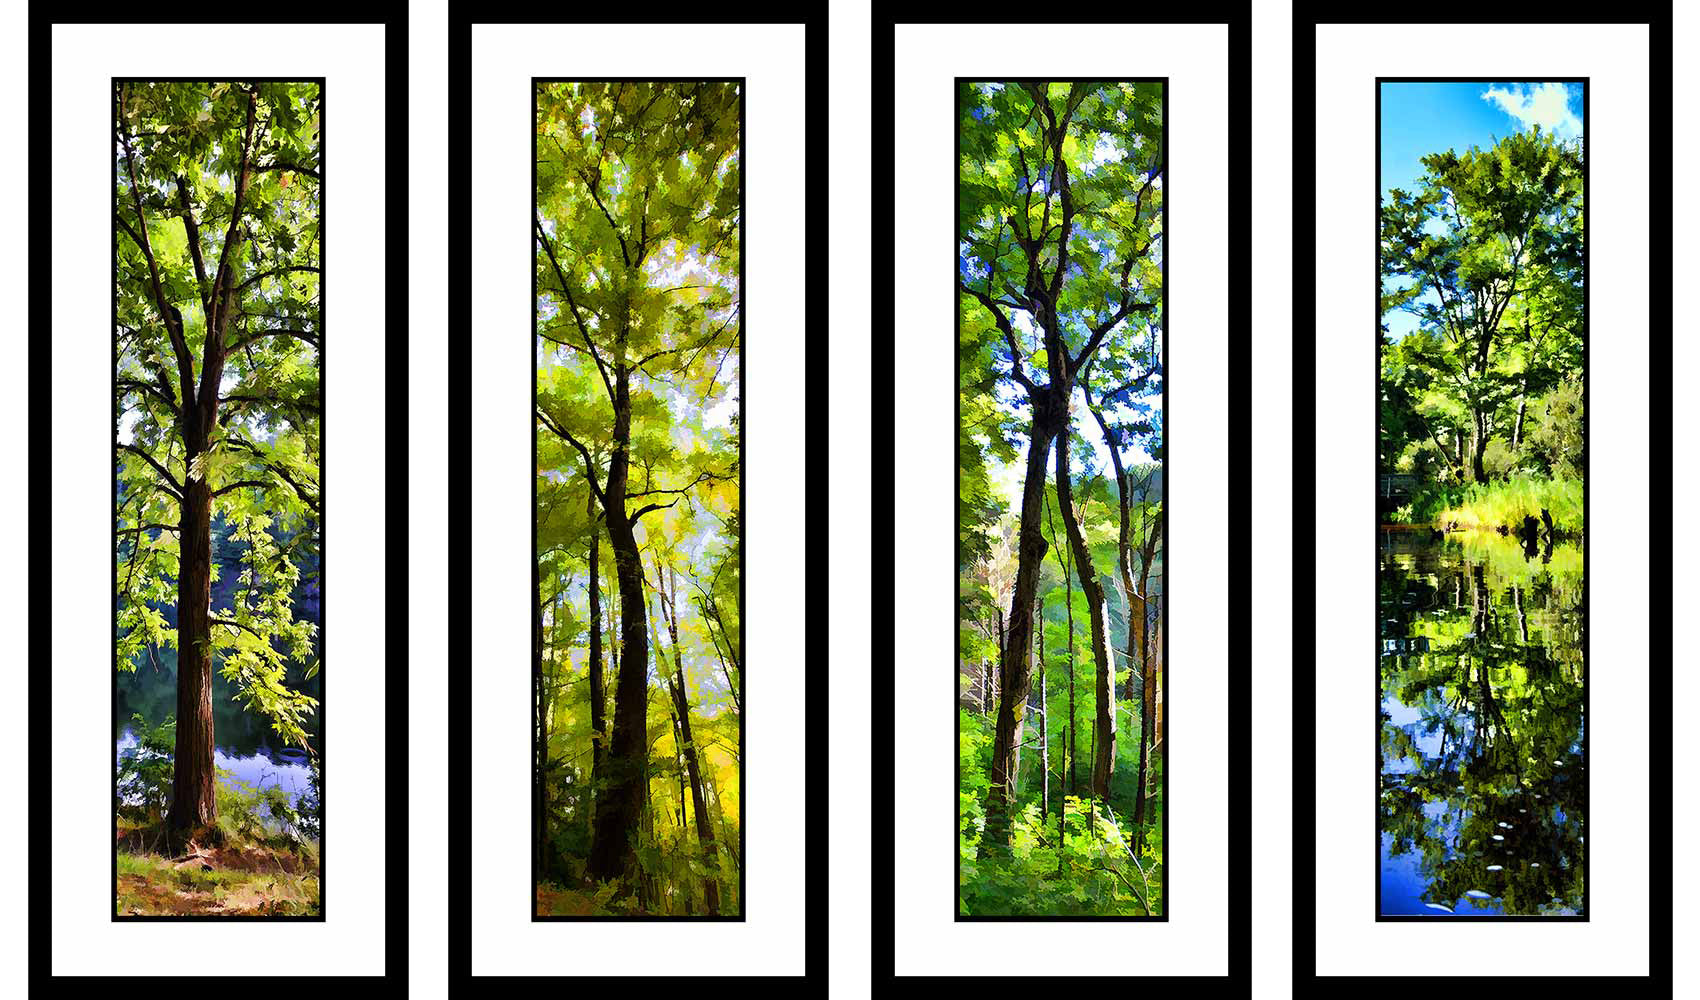 Greens grouping by Alison Thomas of Serenity Scenes Photography and Digital Art.